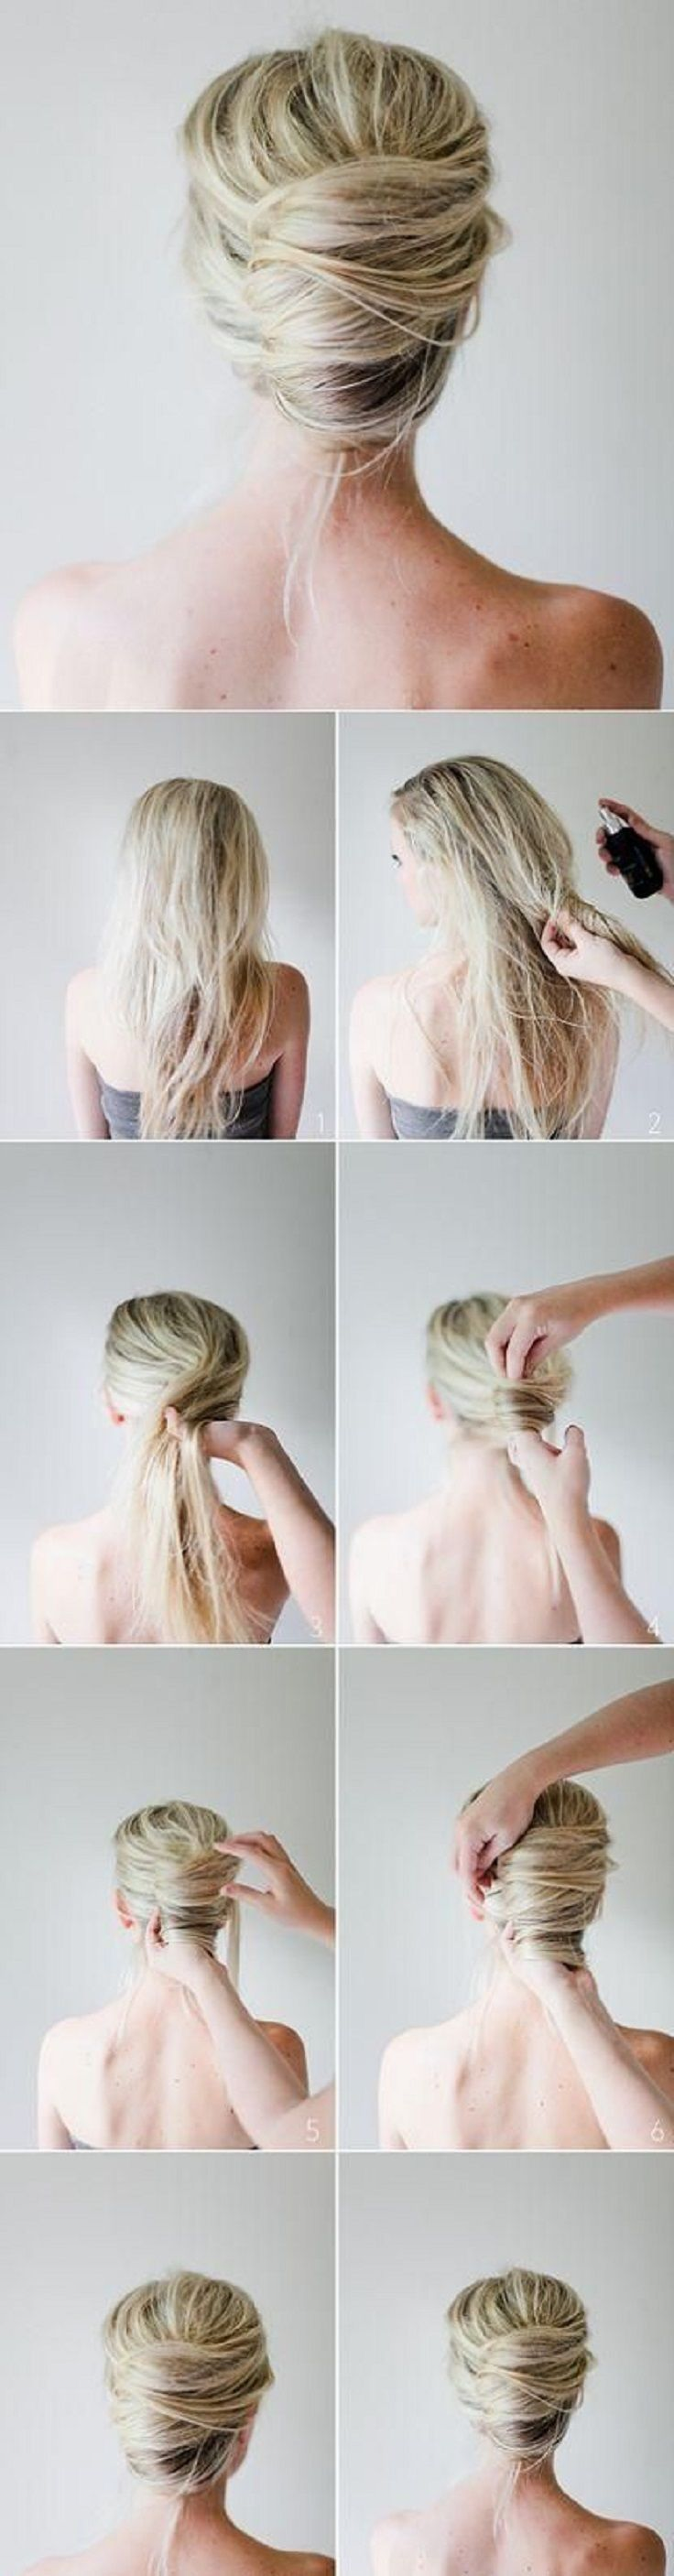 16 best coiffures favorites images on Pinterest | Hairstyle ideas ...